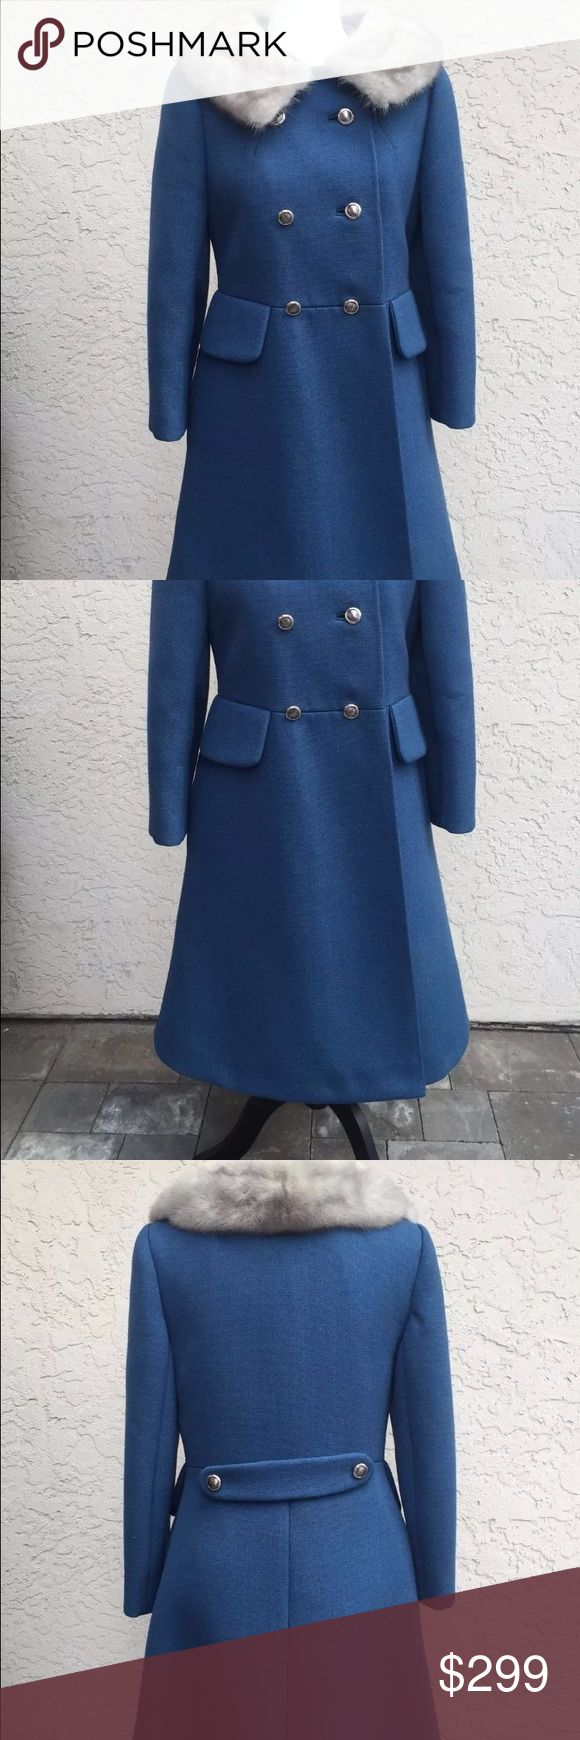 Vintage 1950/60s blue pea coat sz small Here are the flaws : small little holes here and there all over . ( I can provide additional pictures ) pink color silk inside lining , stains near the arm pic areas. Some buttons are slightly loose. Over all amazing vintage condition ! No tags or brand on it. It fits me perfectly and I'm a size small / medium . I have measurements upon request ! Vintage Jackets & Coats Pea Coats